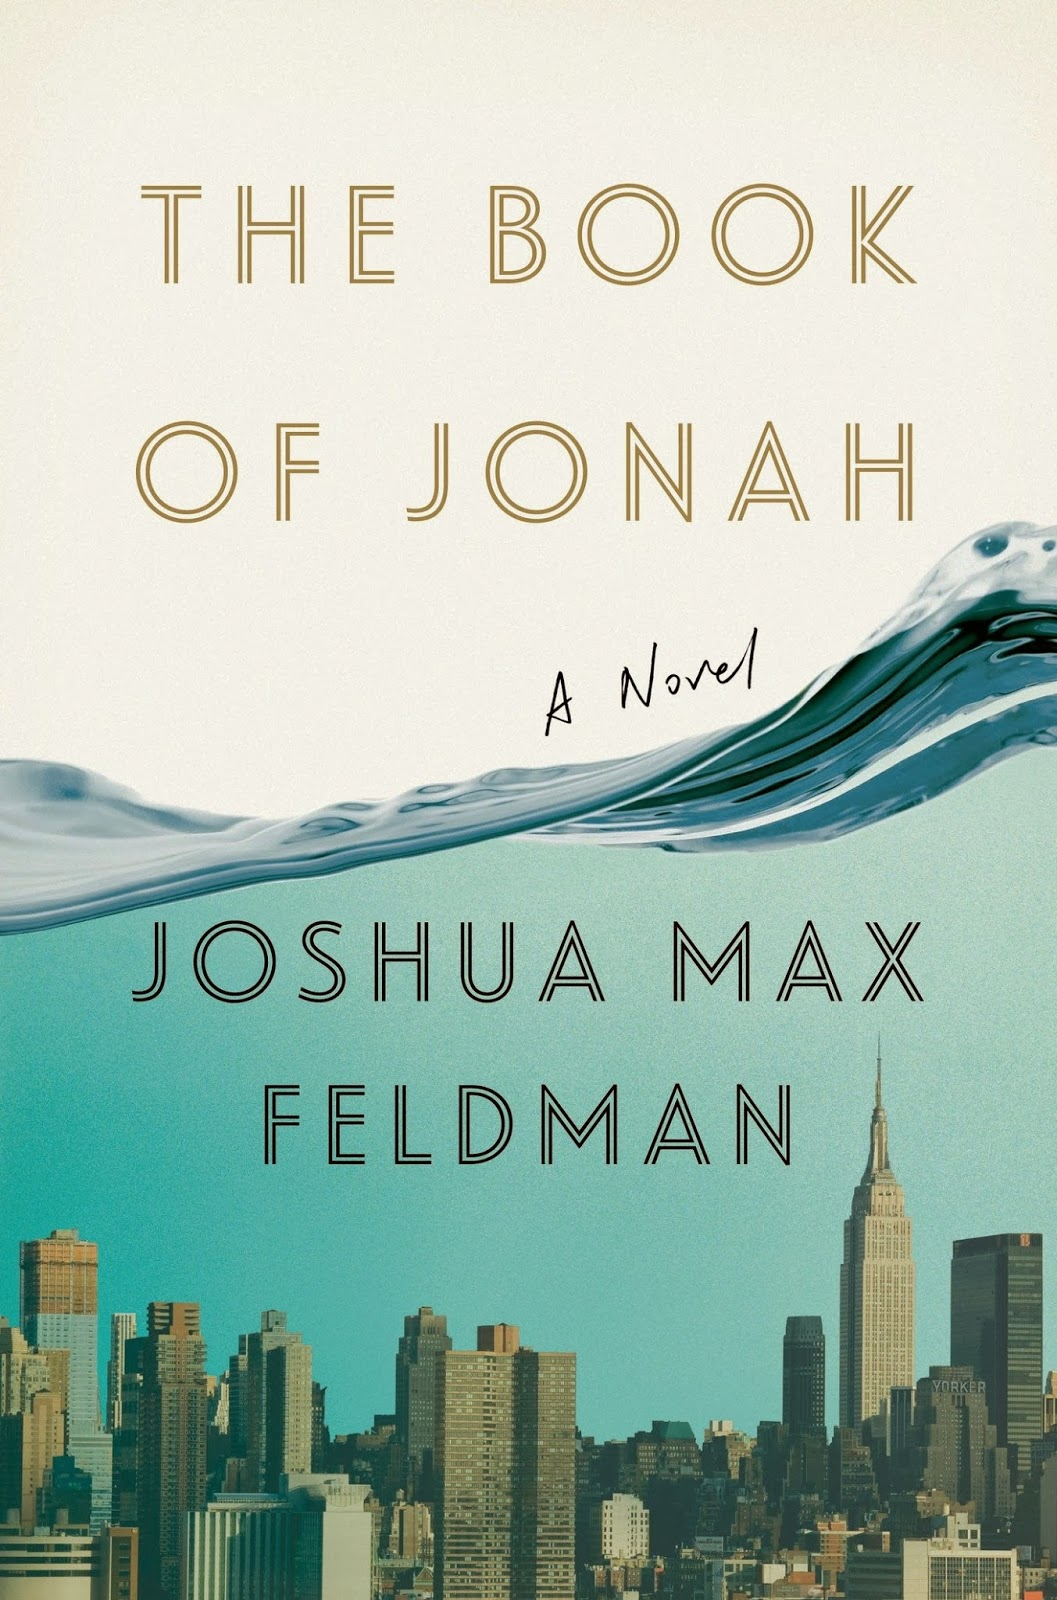 http://discover.halifaxpubliclibraries.ca/?q=title:%22book%20of%20jonah%22joshua